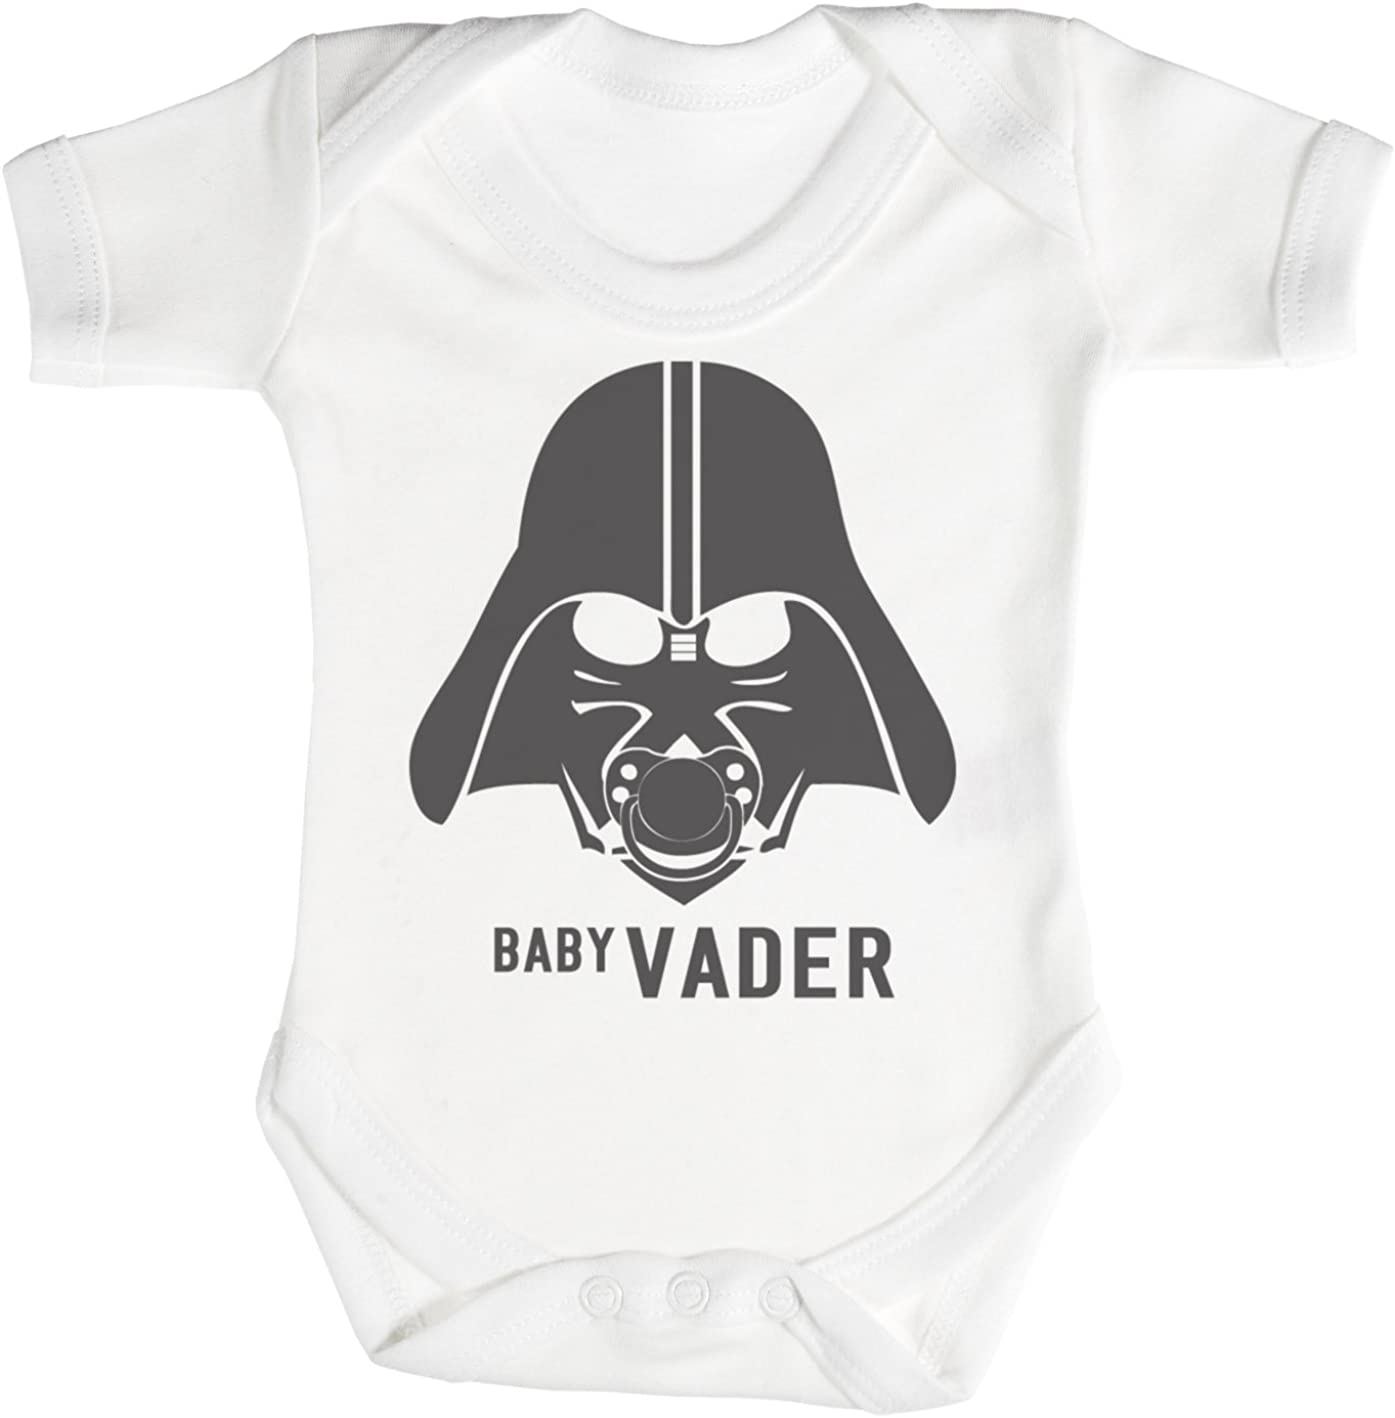 Zarlivia Clothing Baby Vader /& Daddy Vader Matching Father Baby Gift Set Mens T Shirt /& Baby Bodysuit